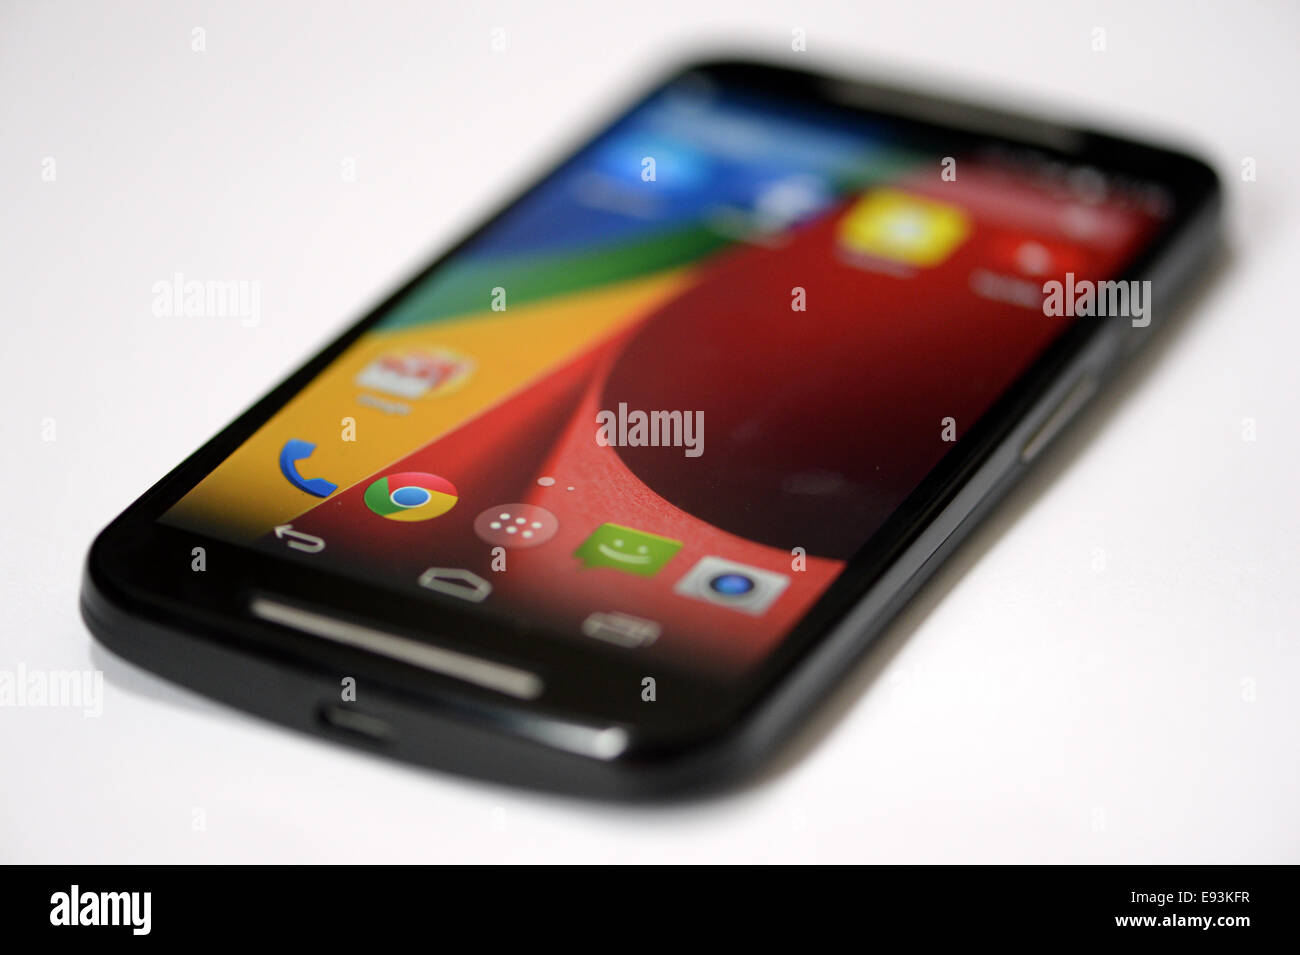 Phone Motorola Phone Android motorola moto g 2014 second generation model mobile phone android operating system